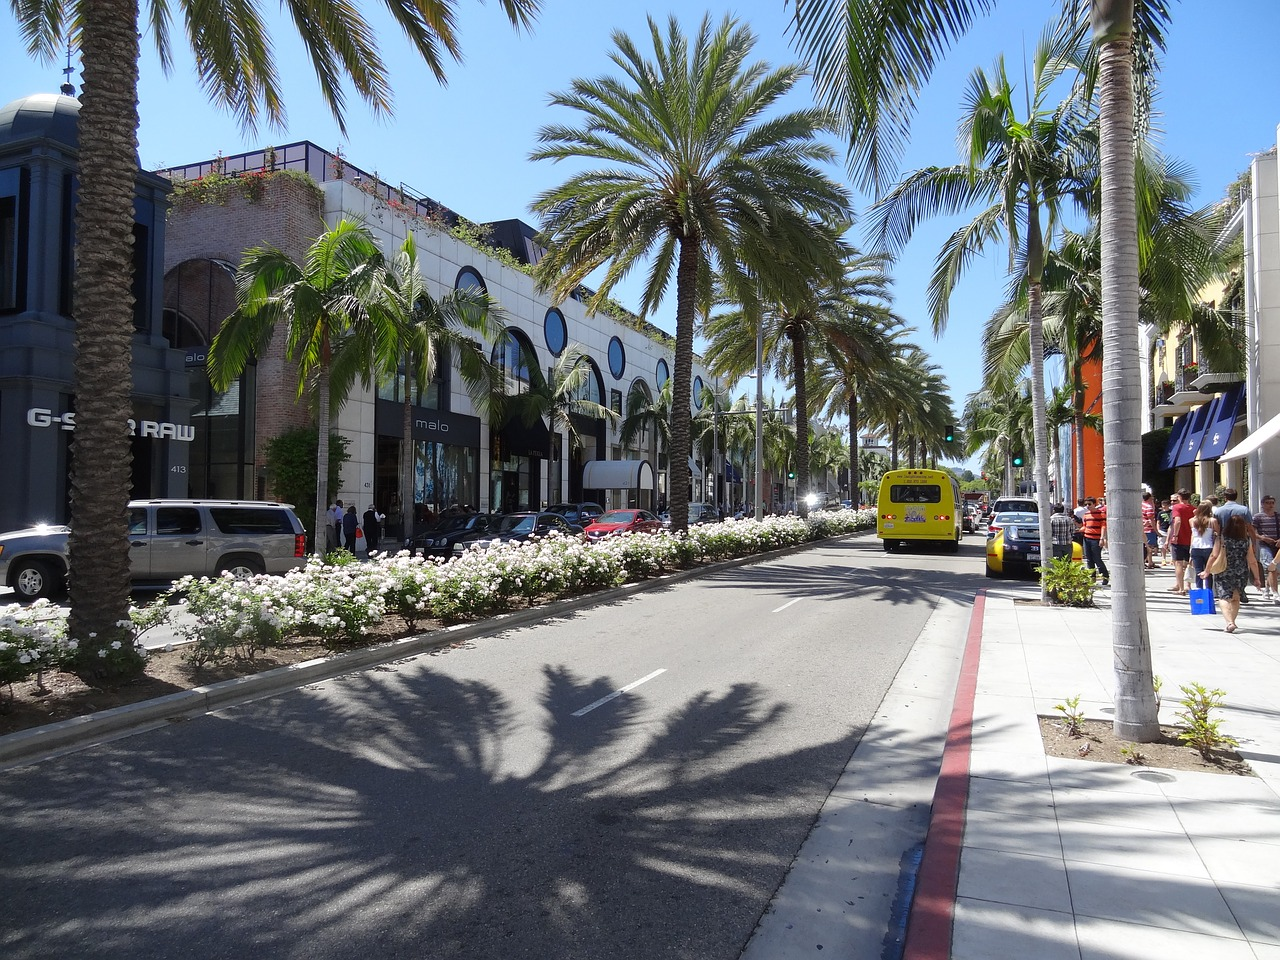 rodeo-drive-686789_1280